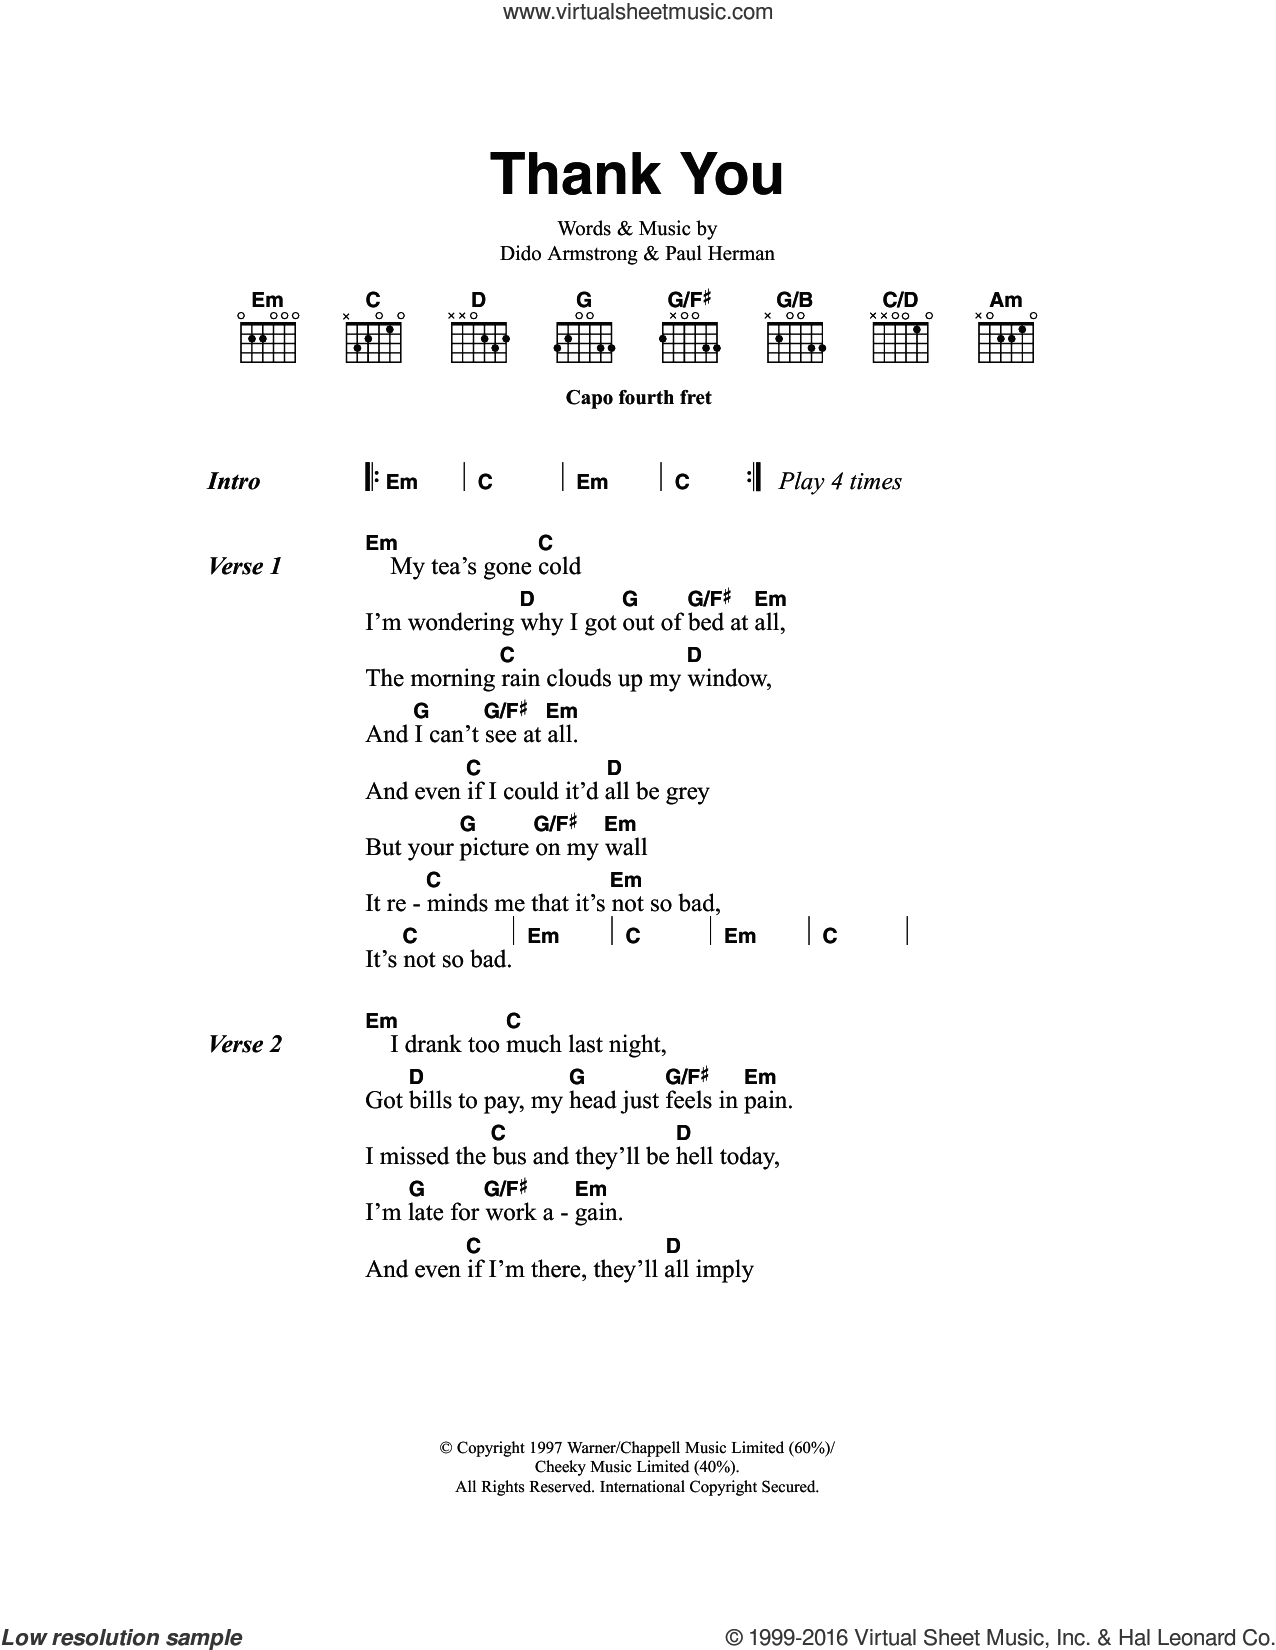 Thank You sheet music for guitar (chords) by Dido Armstrong and Paul Herman, intermediate skill level